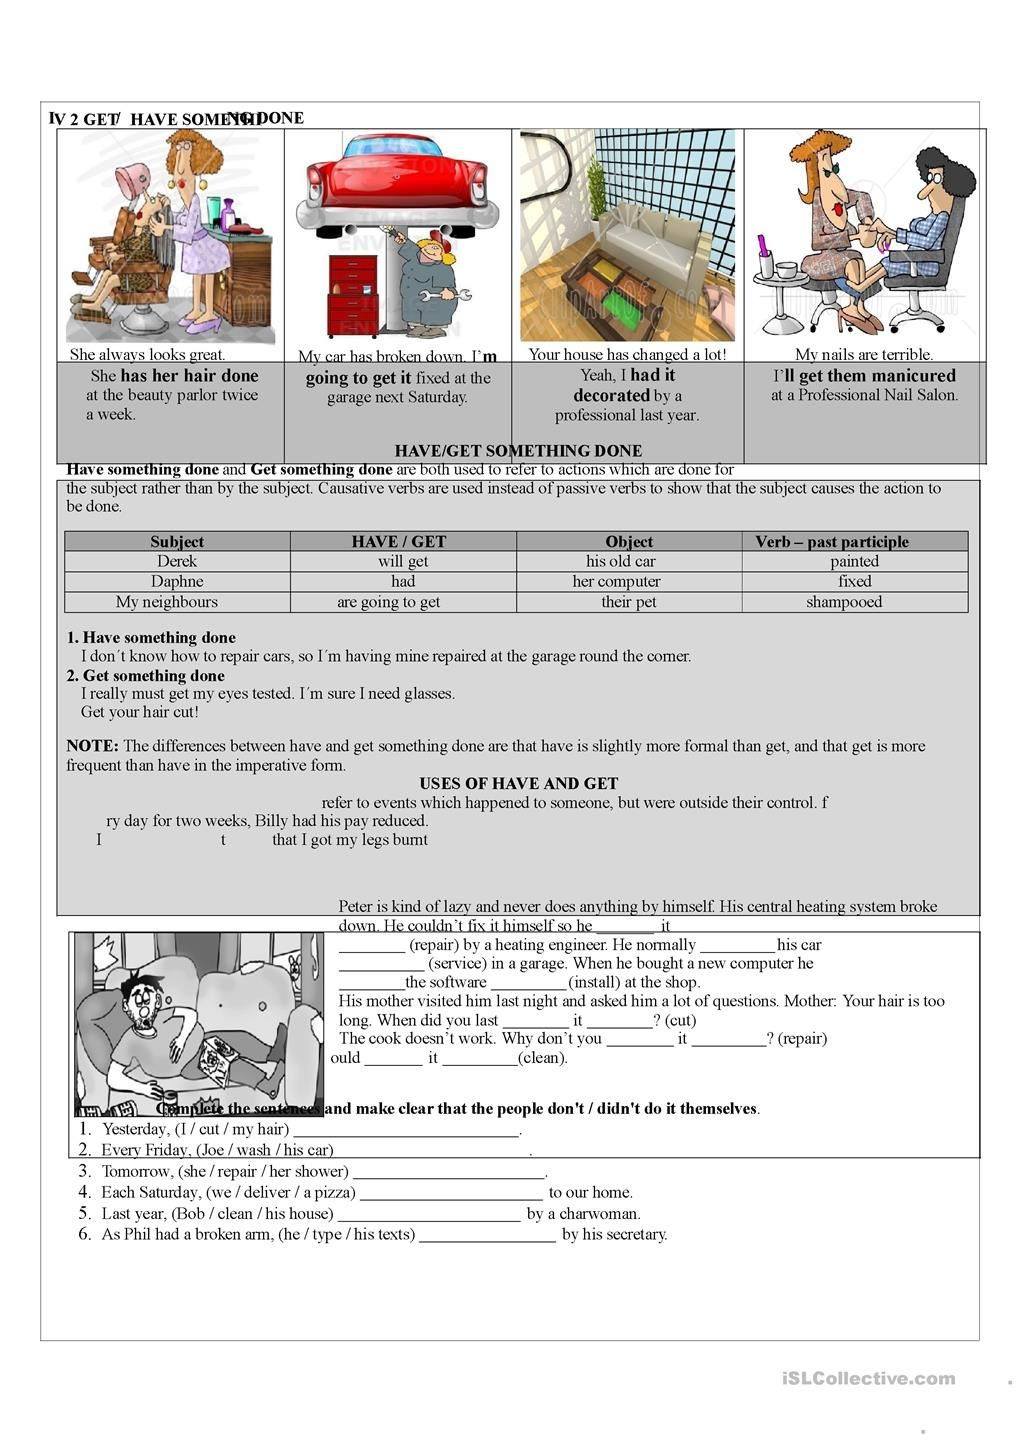 The objective of this worksheet is to help students practice exercises with passive causatives using have something done past participle of regular and